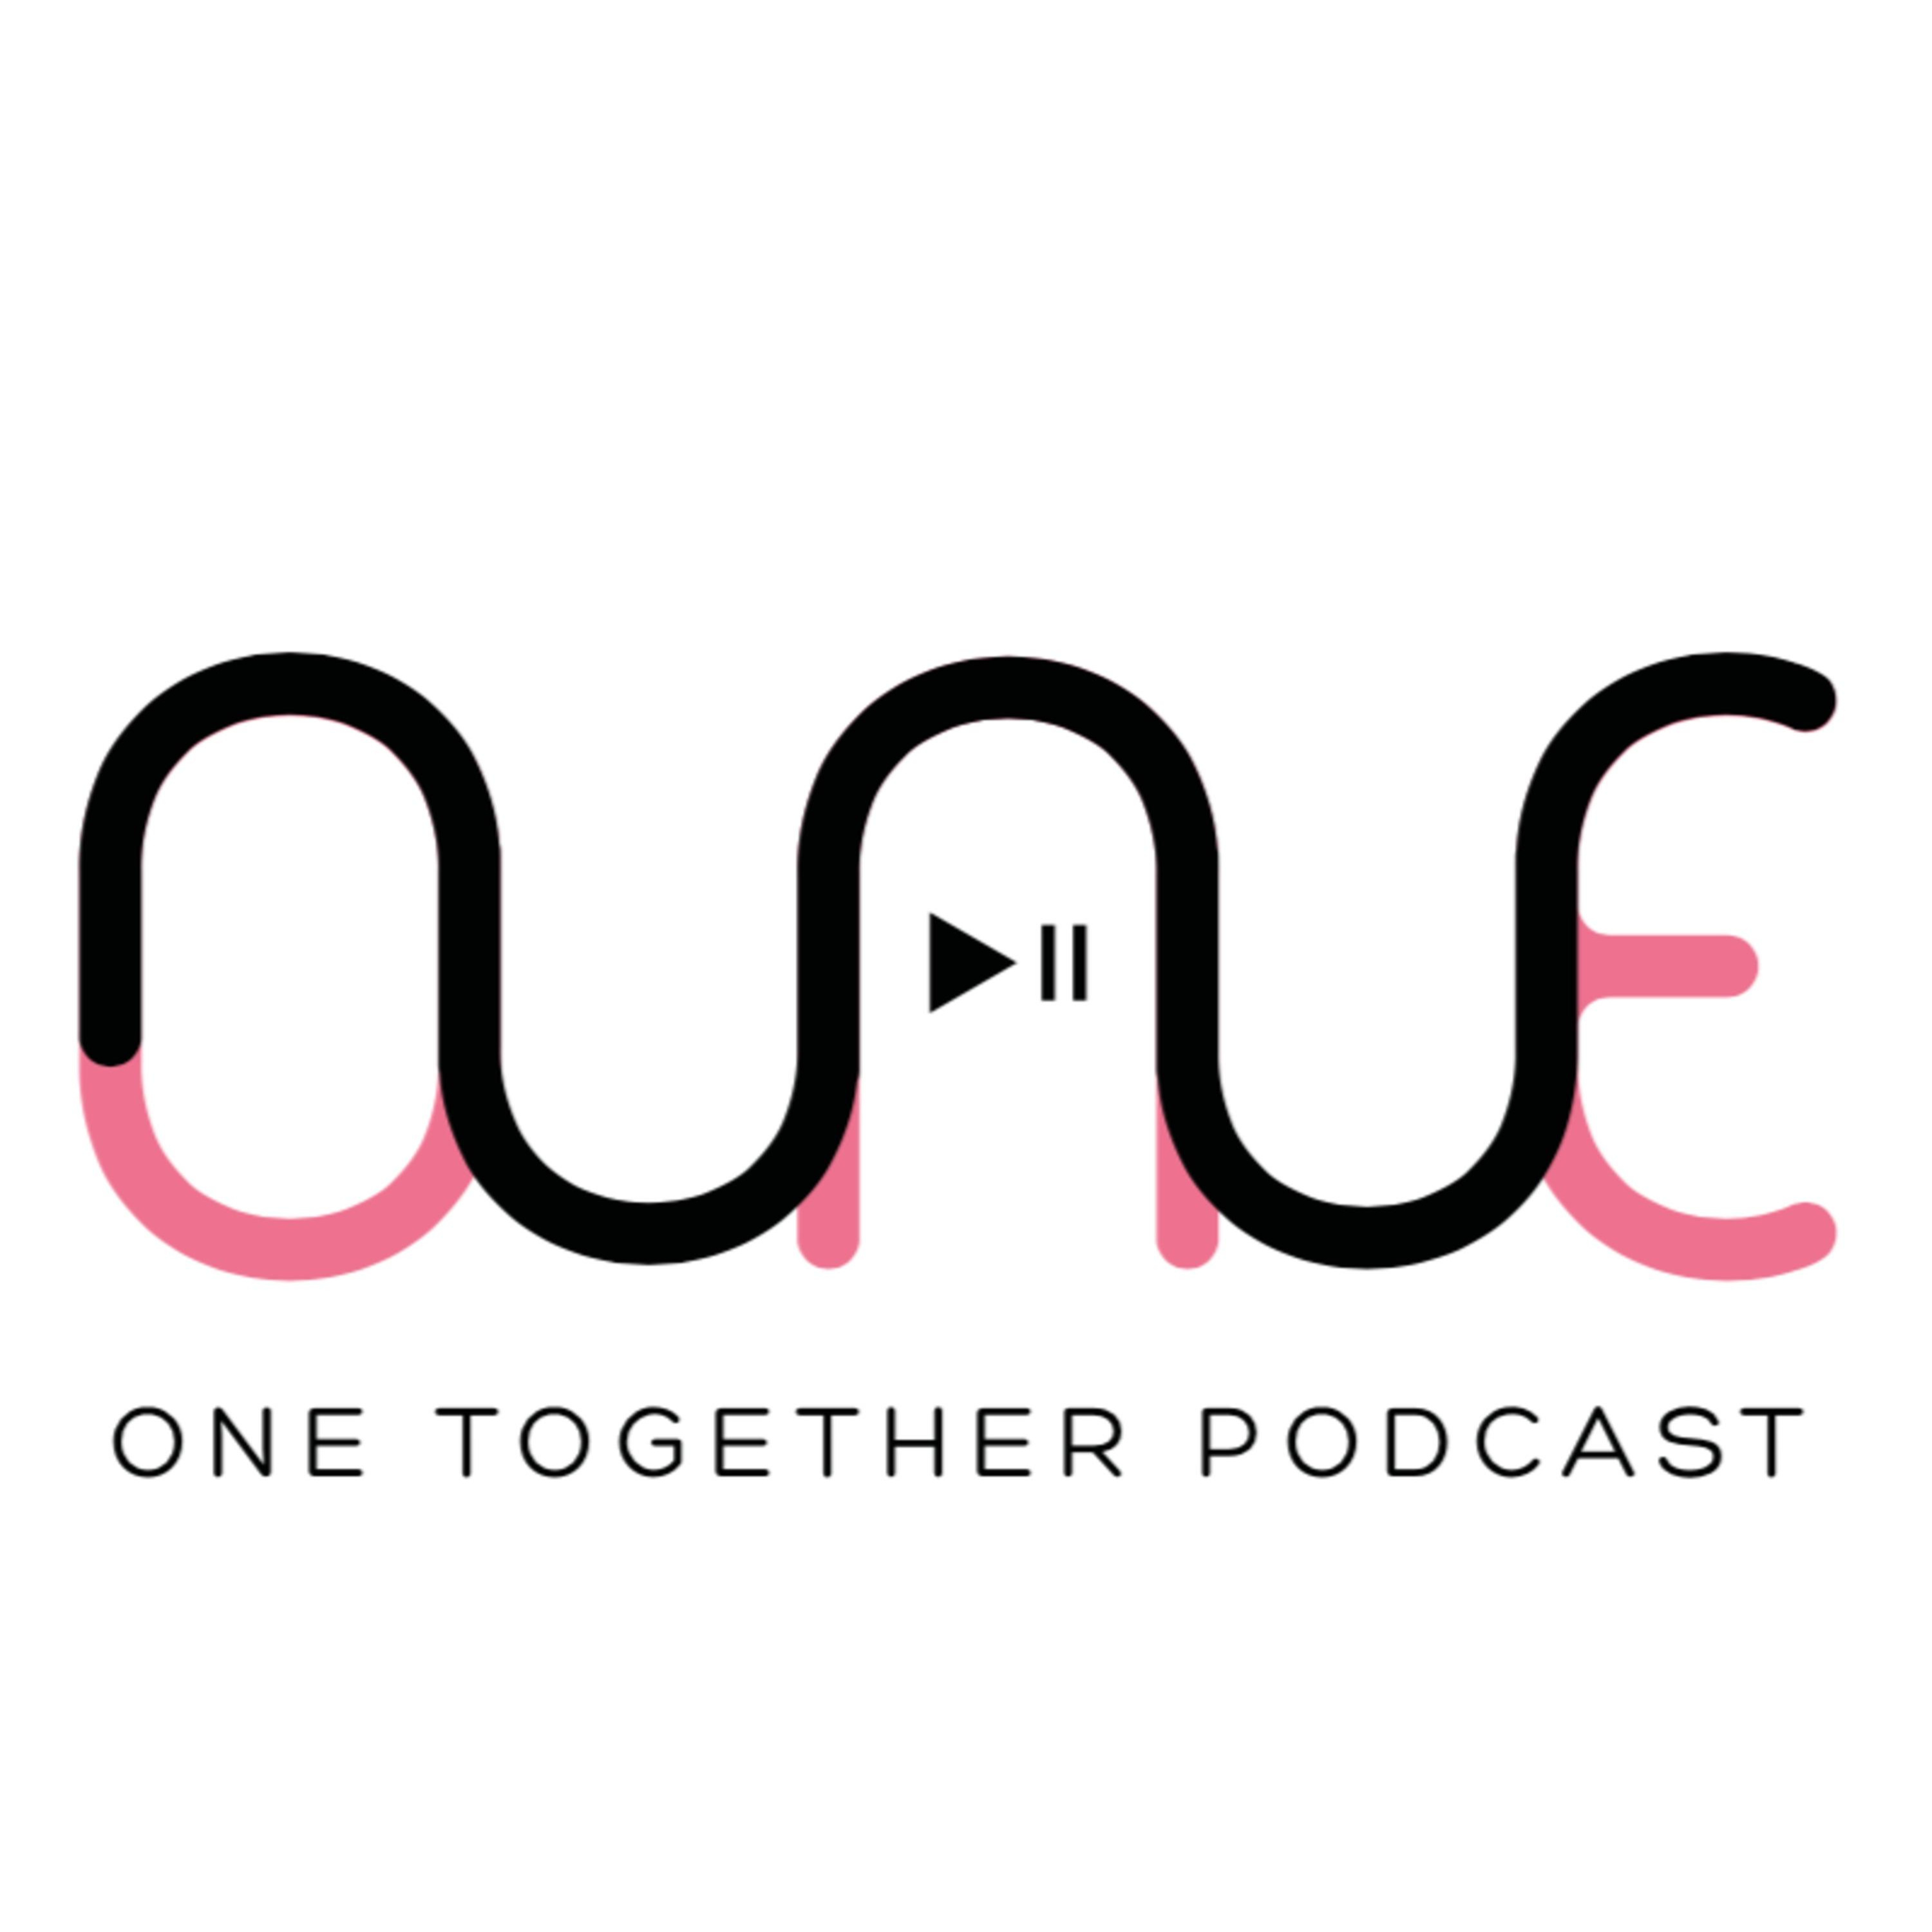 One Together Podcast- hosted by Heather Maltman | Listen Free on